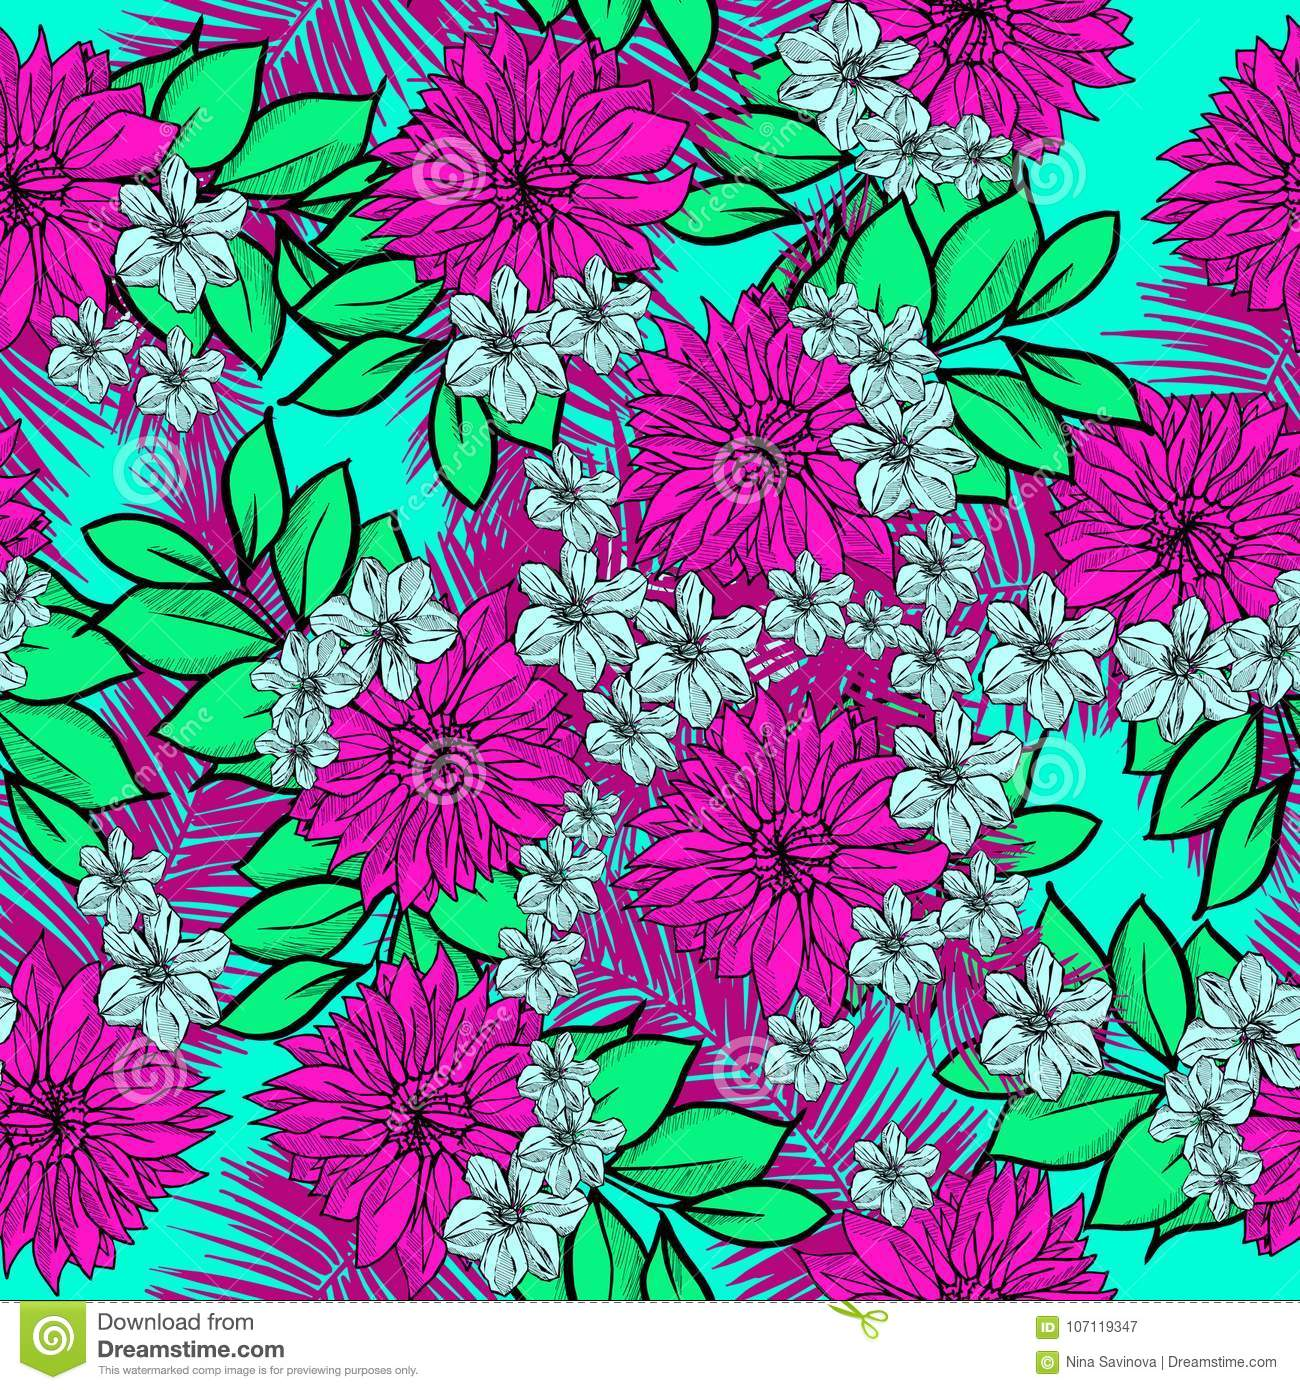 Beautiful and colorful hand drawn hawaiian tropical flowers repeated download beautiful and colorful hand drawn hawaiian tropical flowers repeated pattern vector stock vector illustration izmirmasajfo